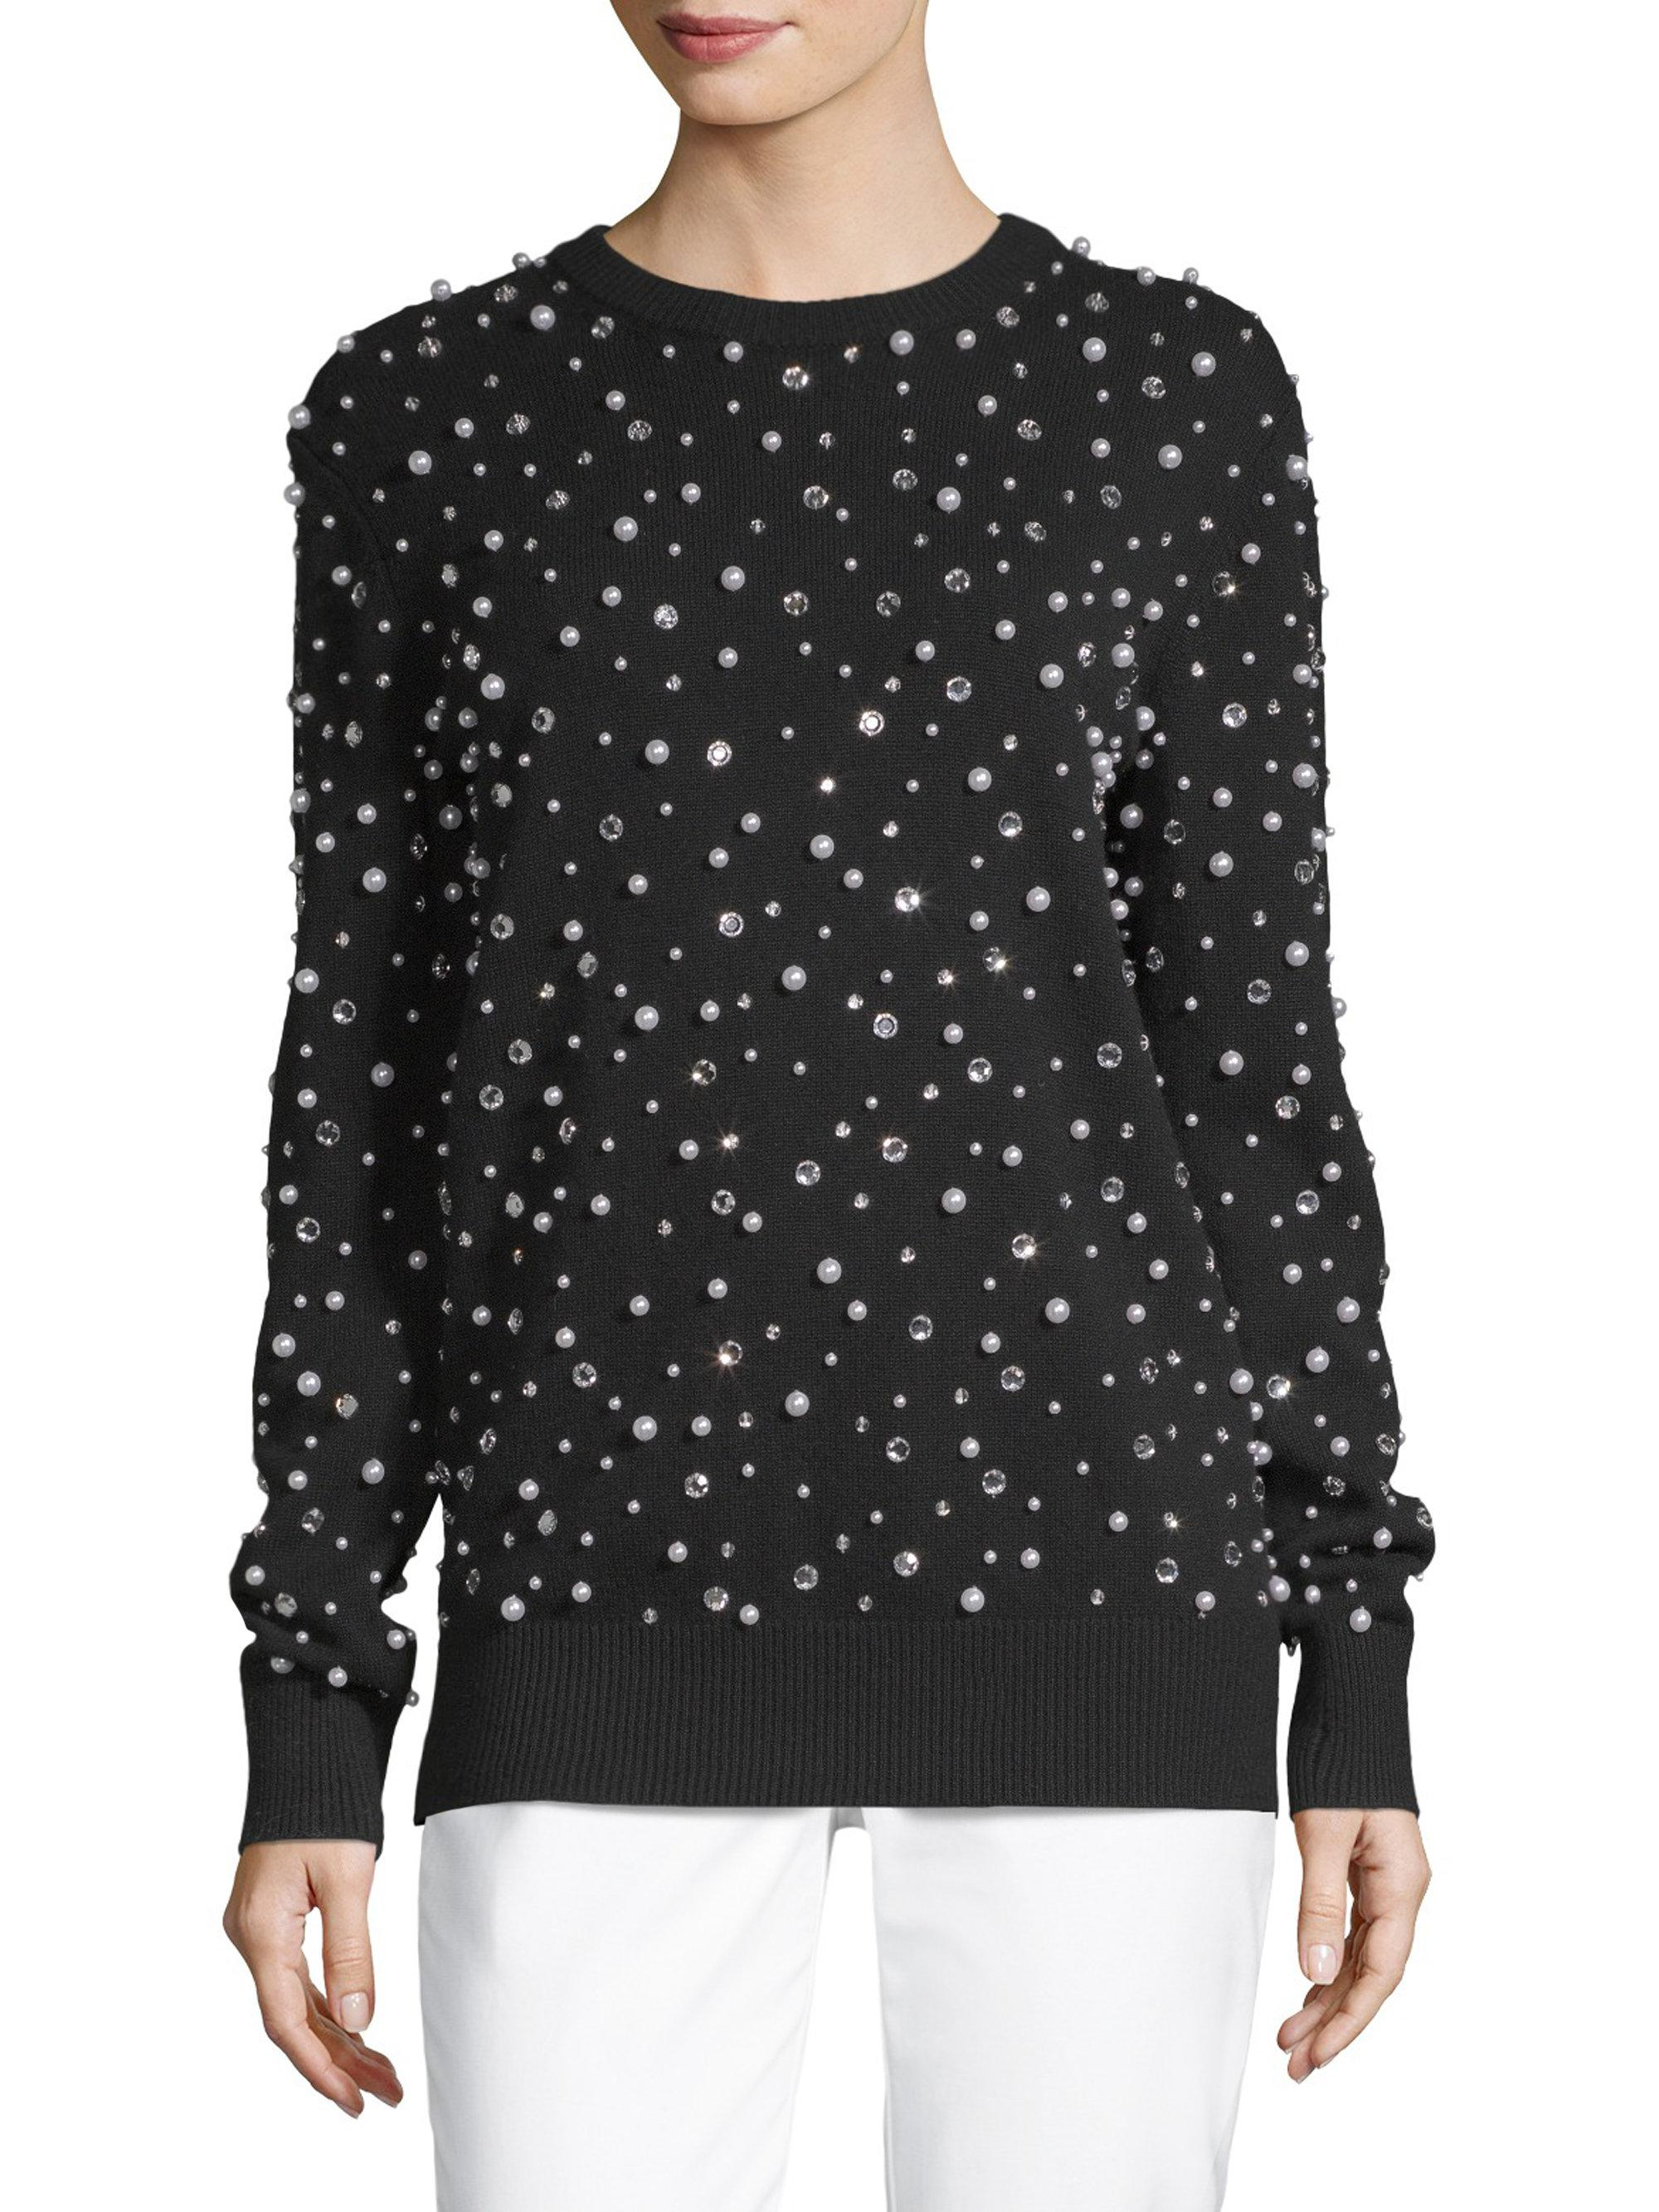 c942402ed37a Michael Kors Embroidered Cashmere Sweater in Black - Lyst